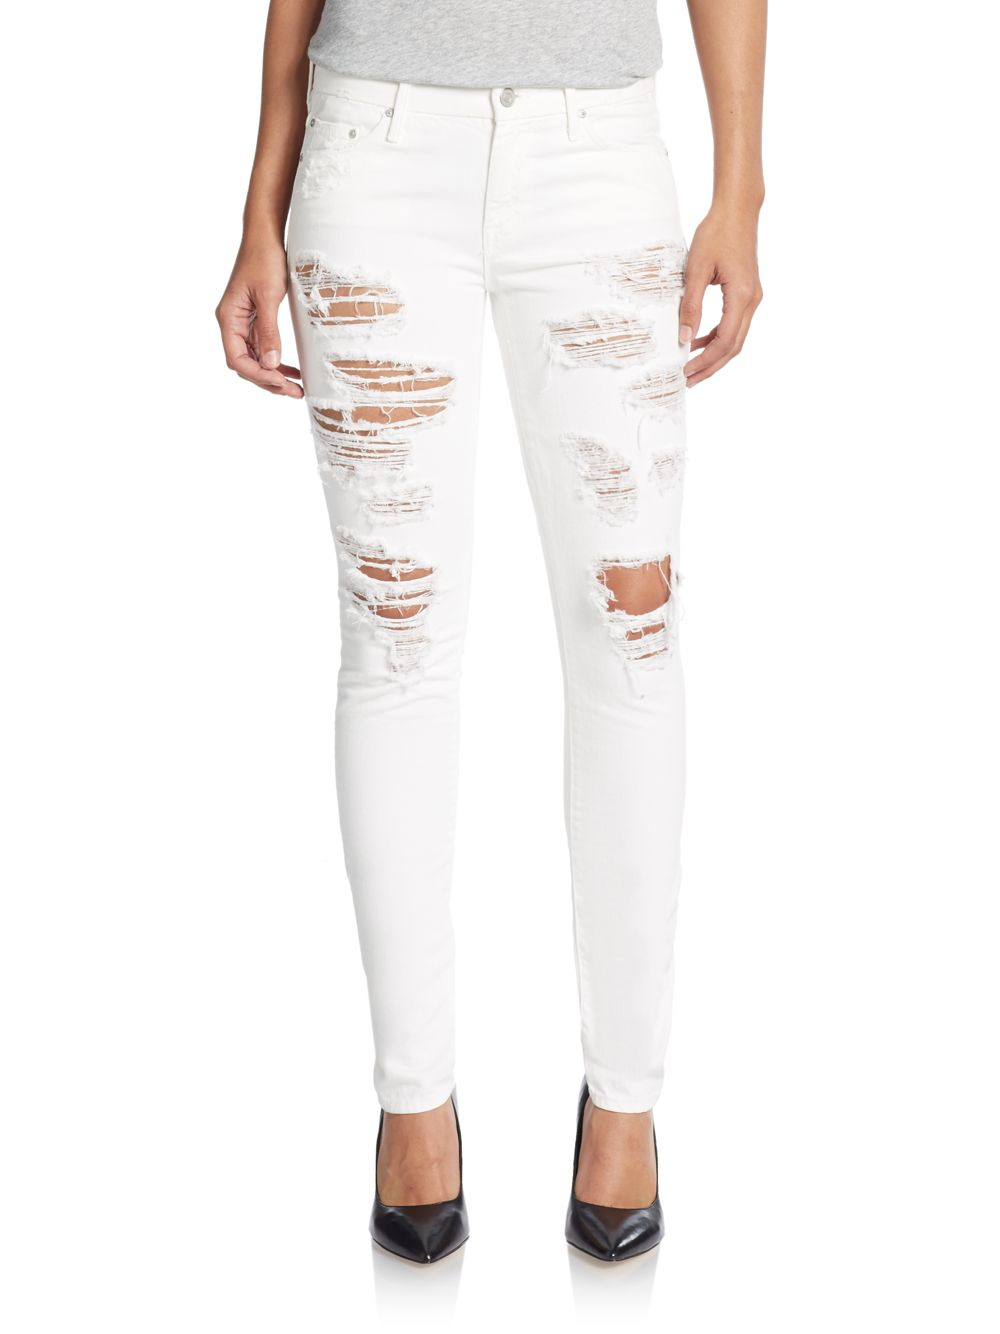 Lyst - Mother The Looker Distressed Slim-leg Jeans in White